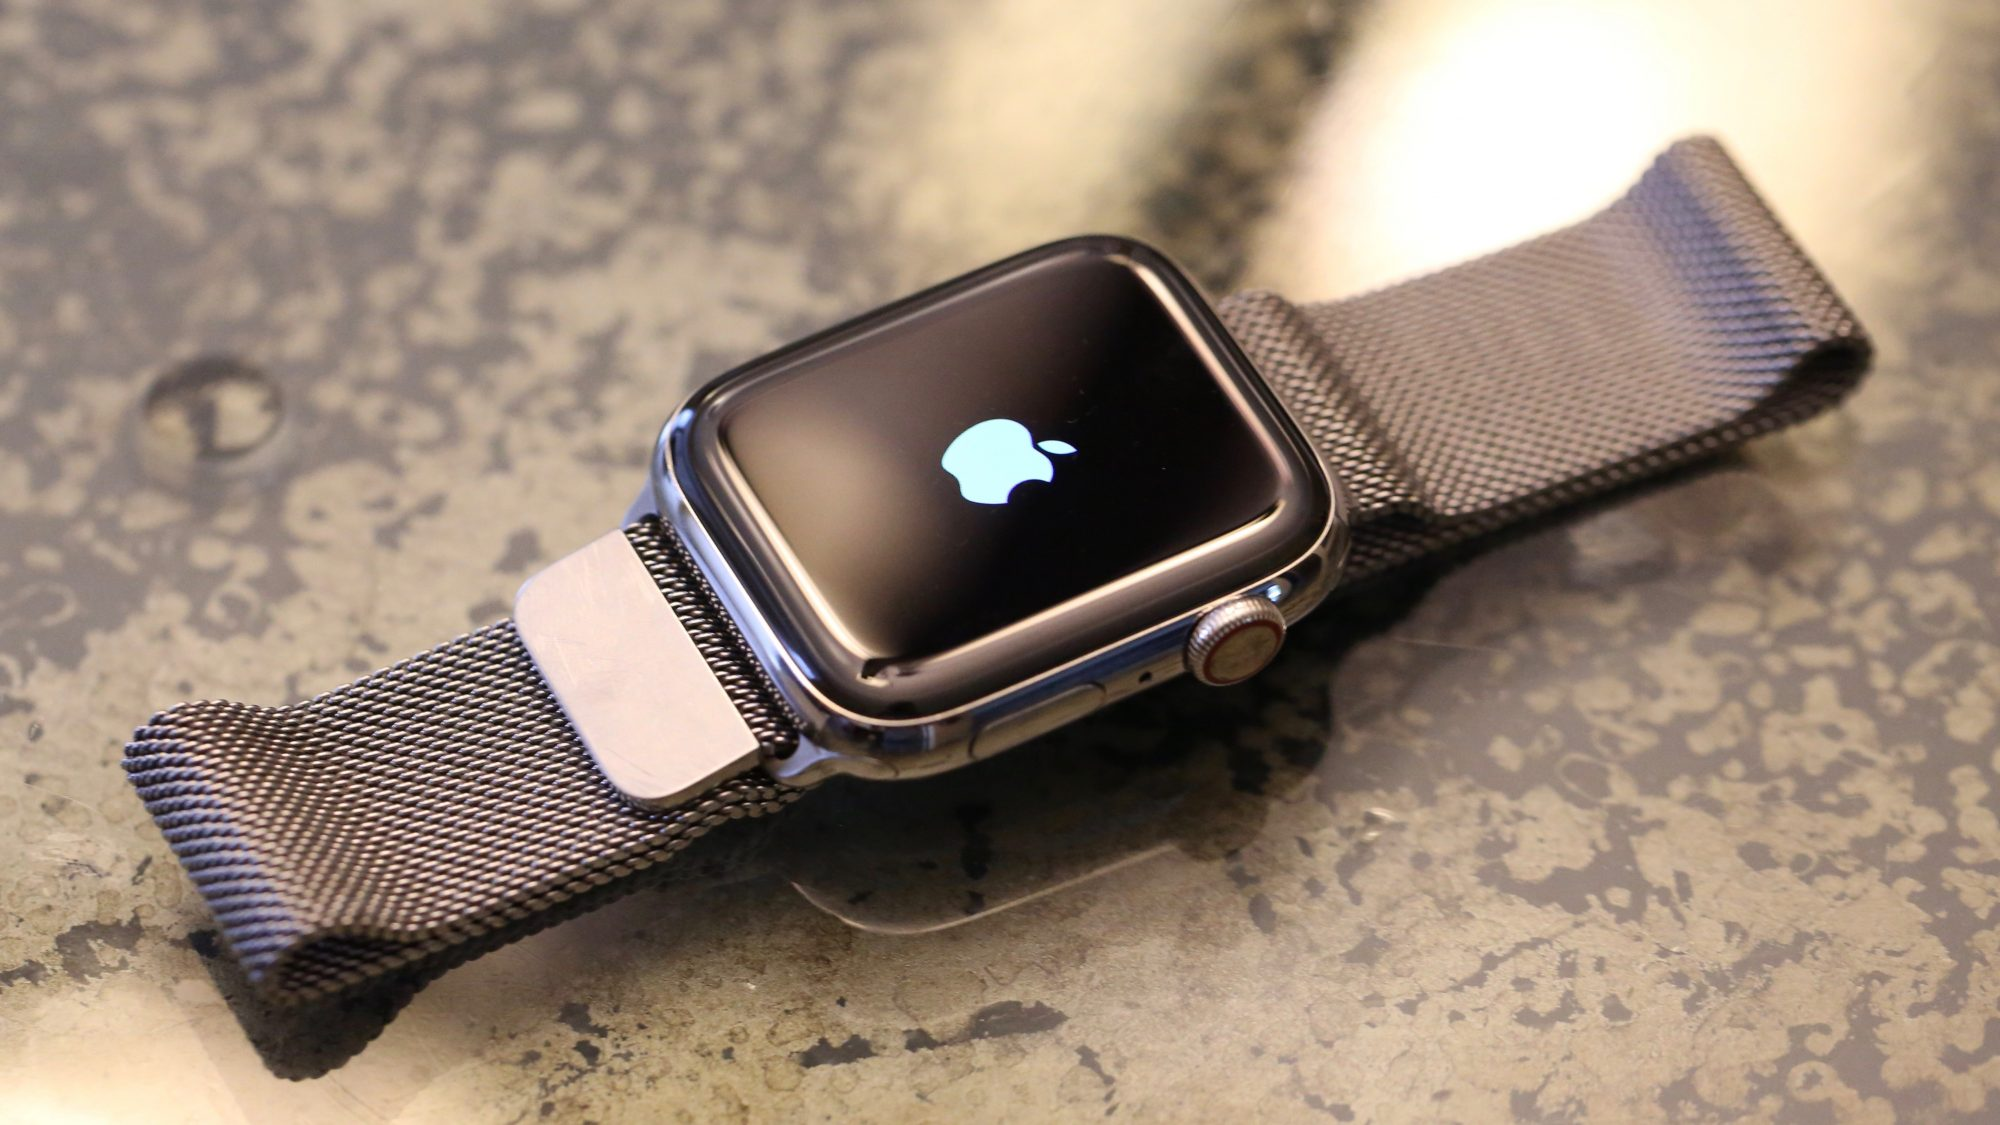 iPhone yes, Apple Watch no (so far)